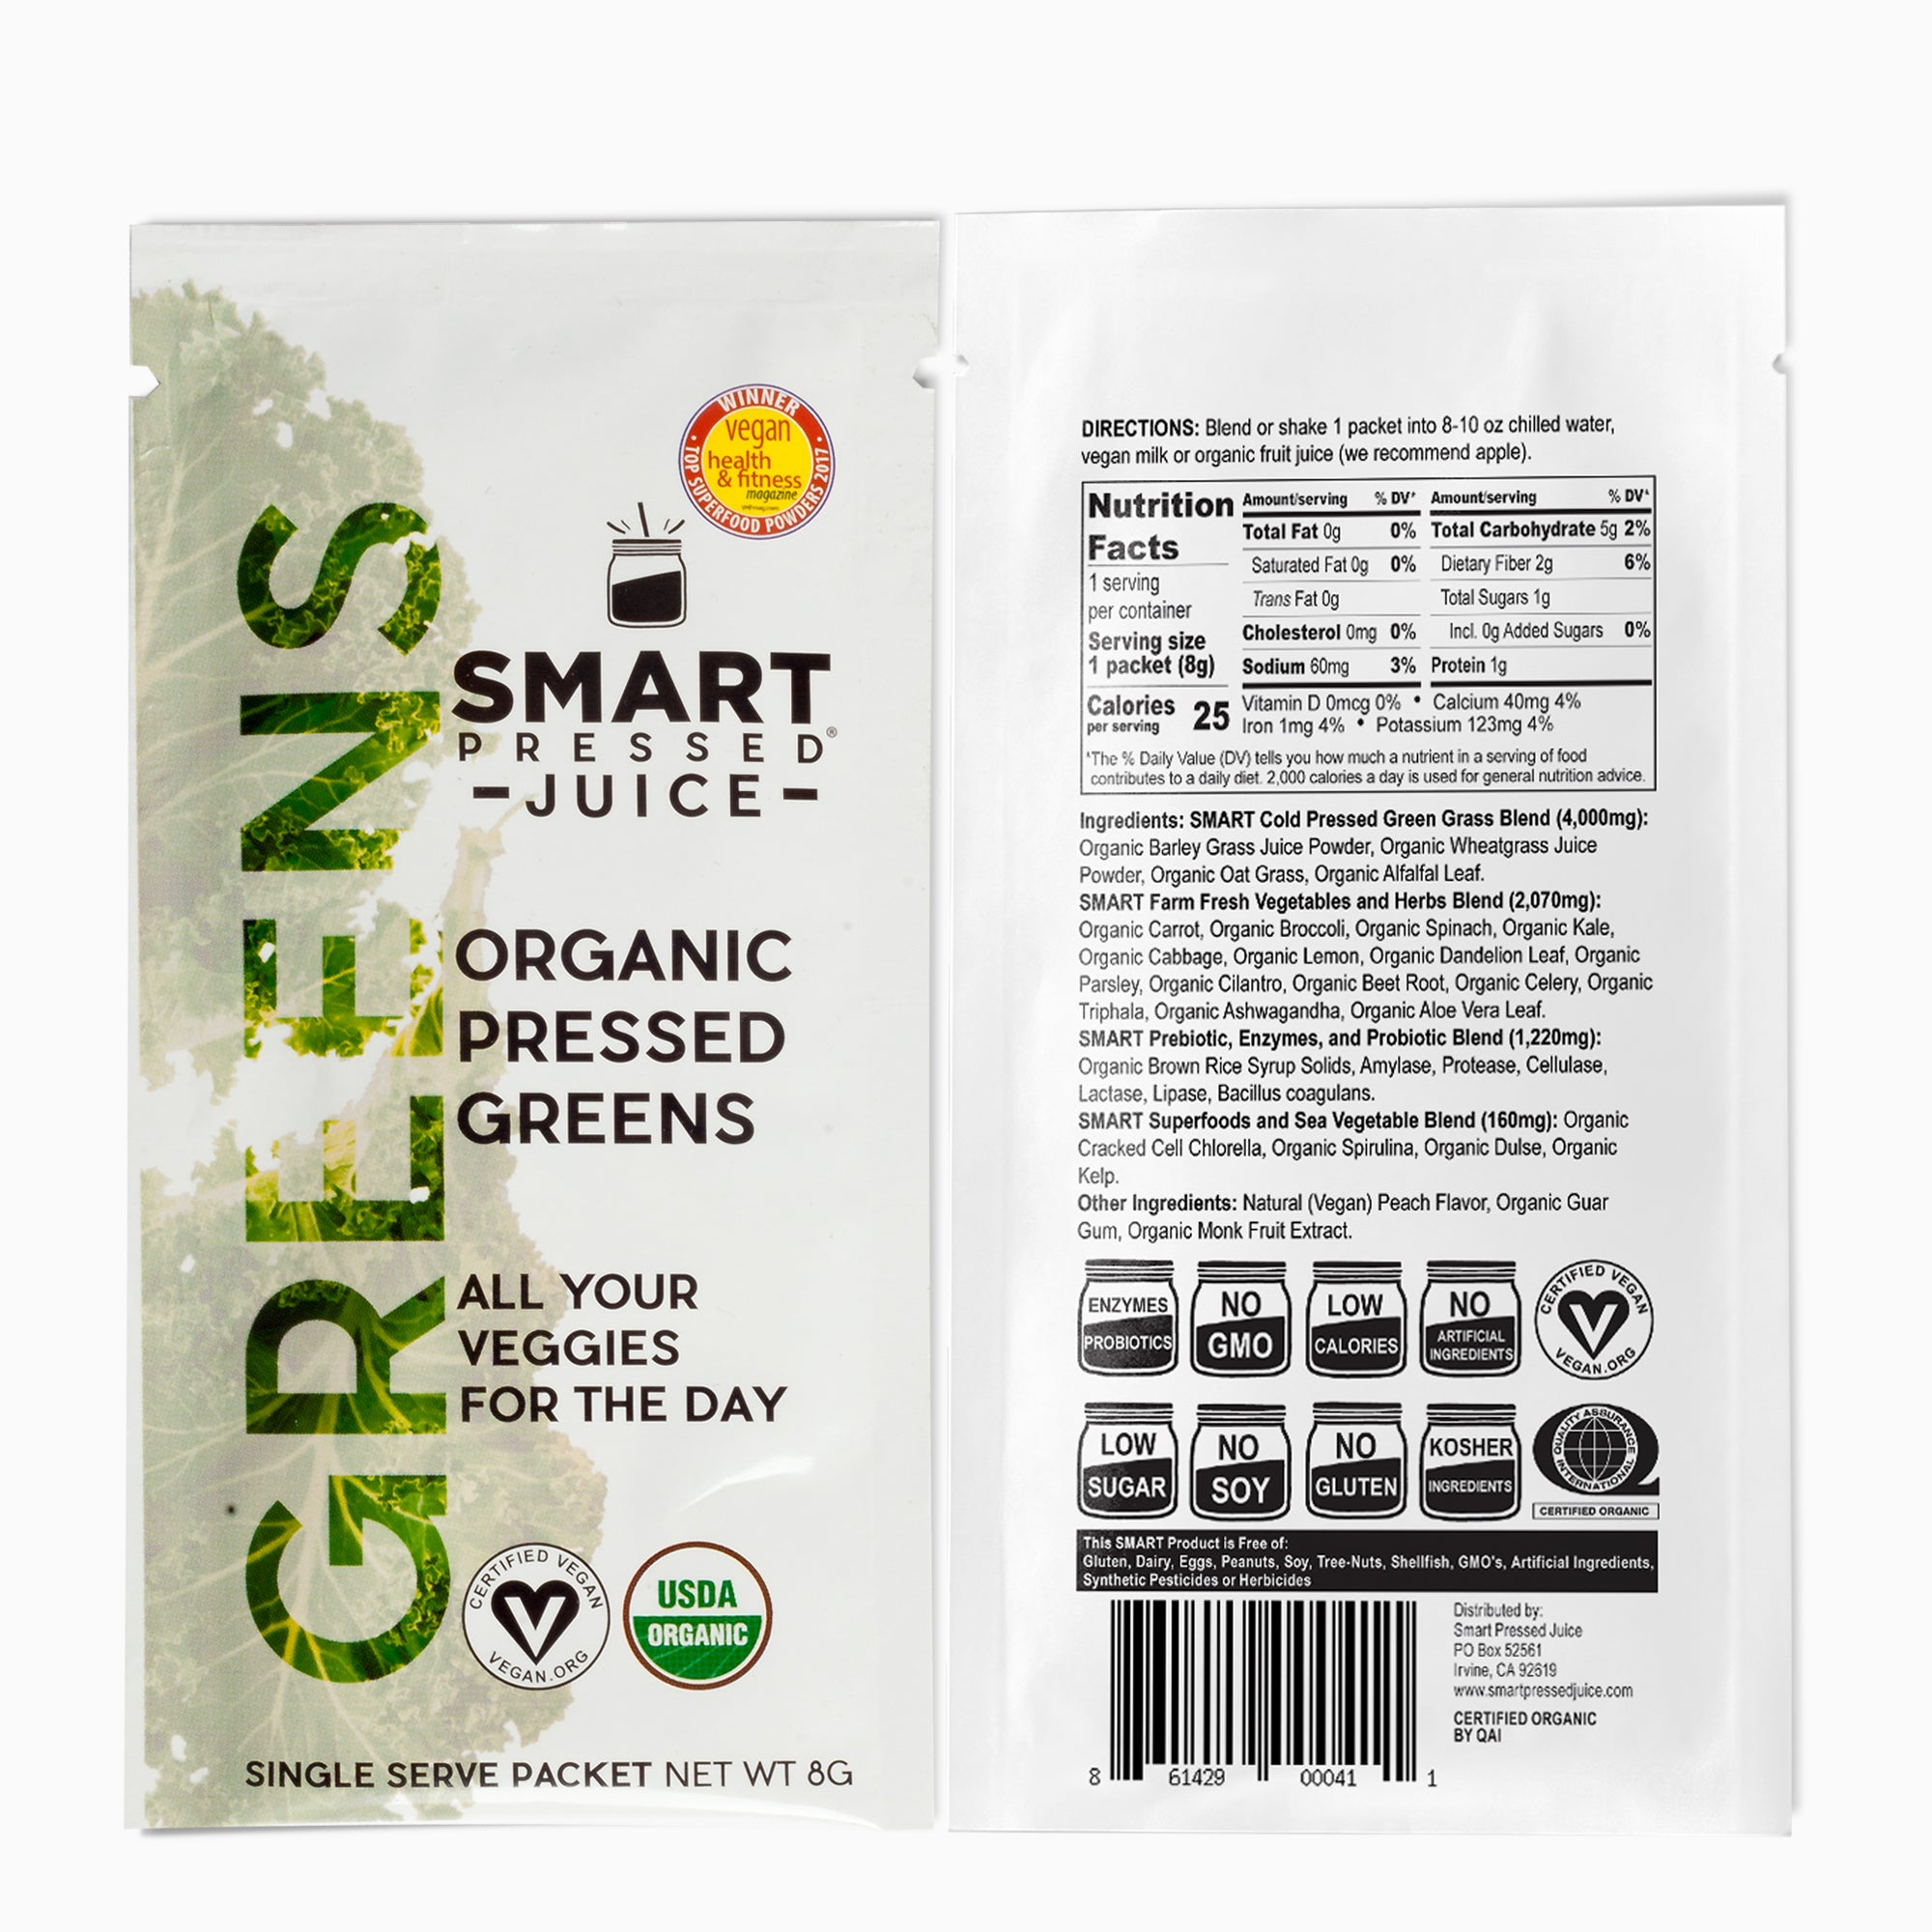 Smart Pressed Juice Organic Pressed Greens Packets